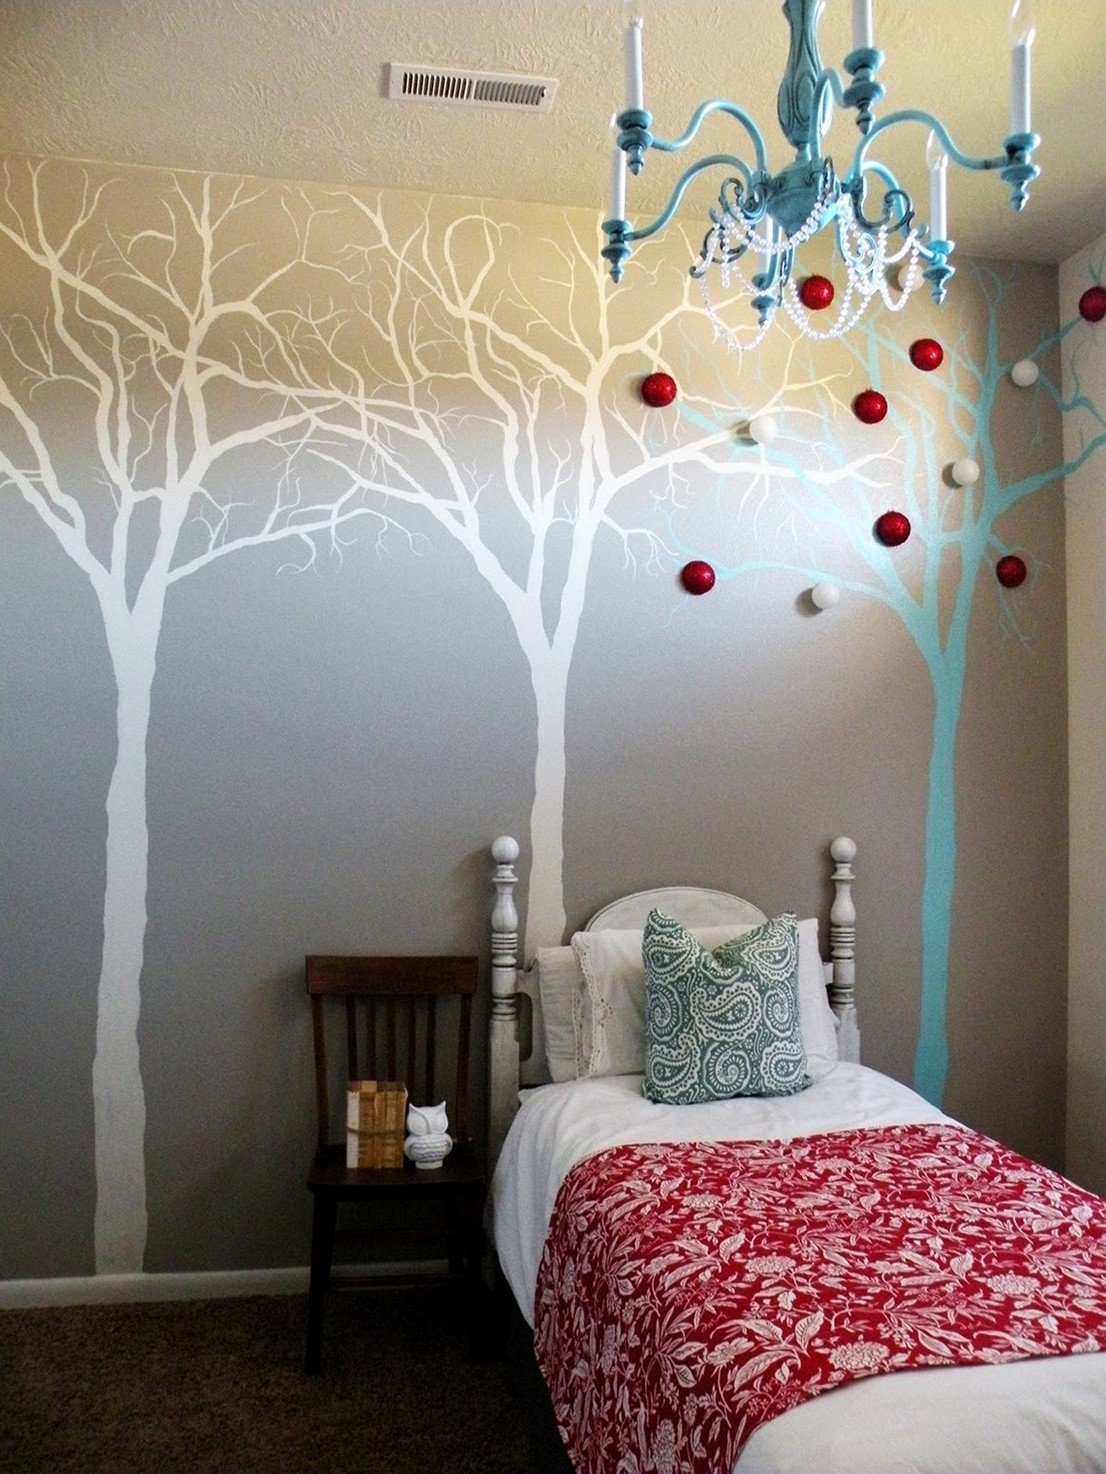 DIY-Wall-Mural-Painting-of-a-Tree